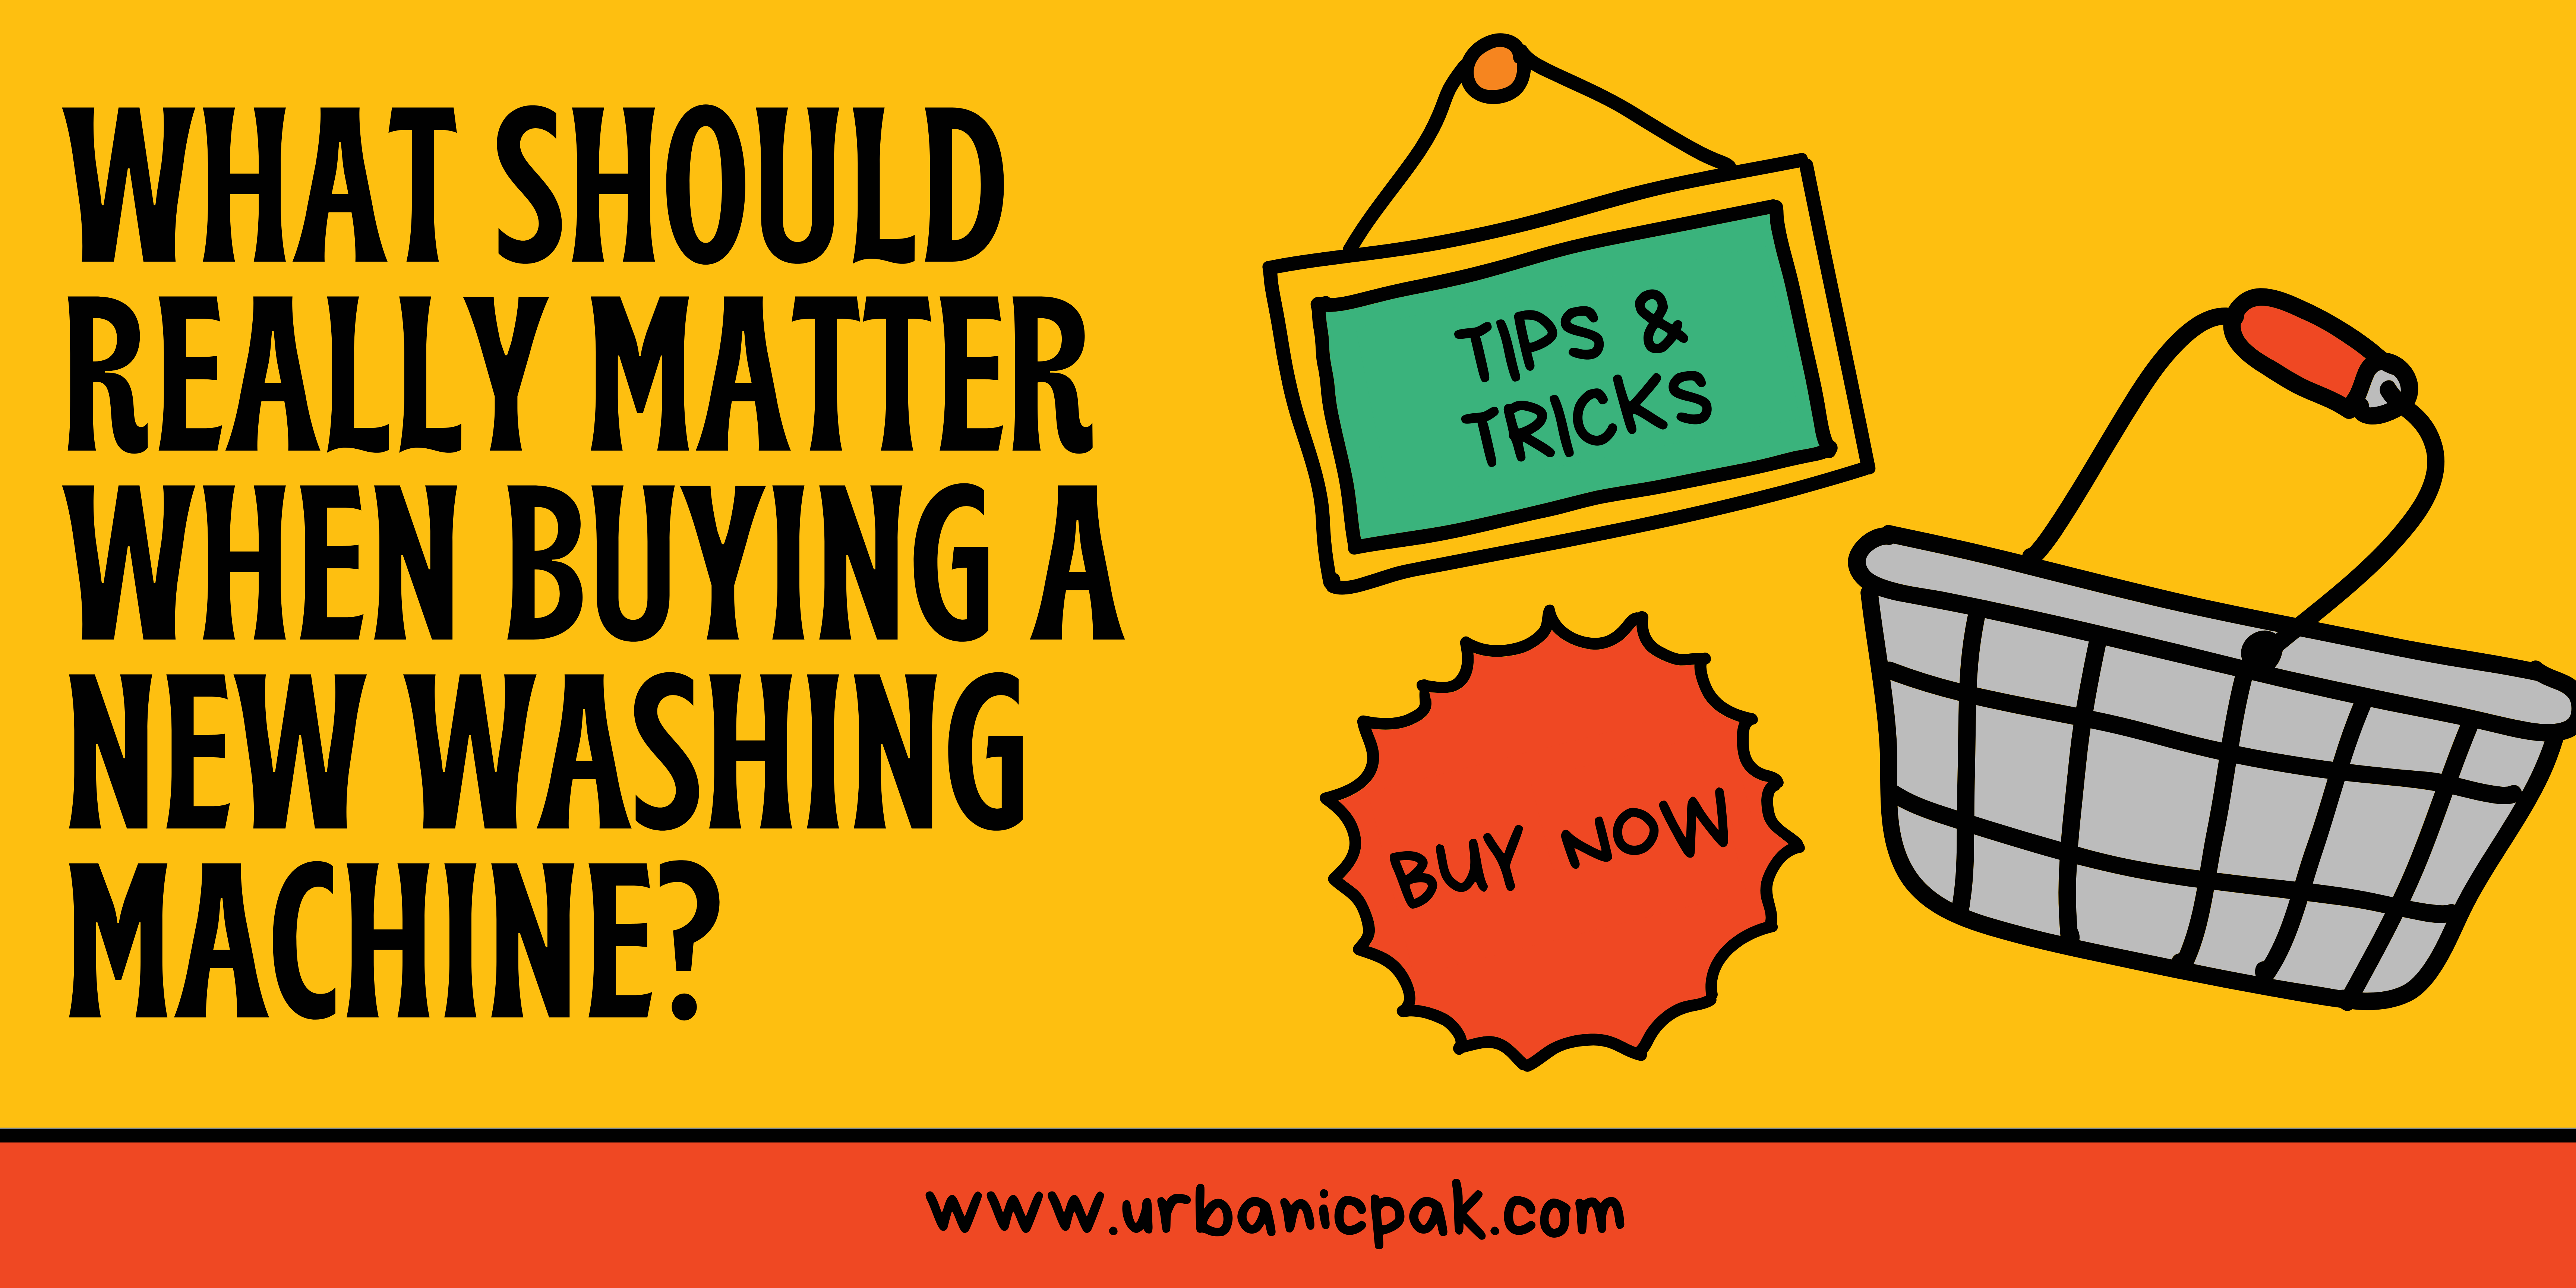 What-Should-Really-Matter-When-Buying-A-New-Washing-Machine